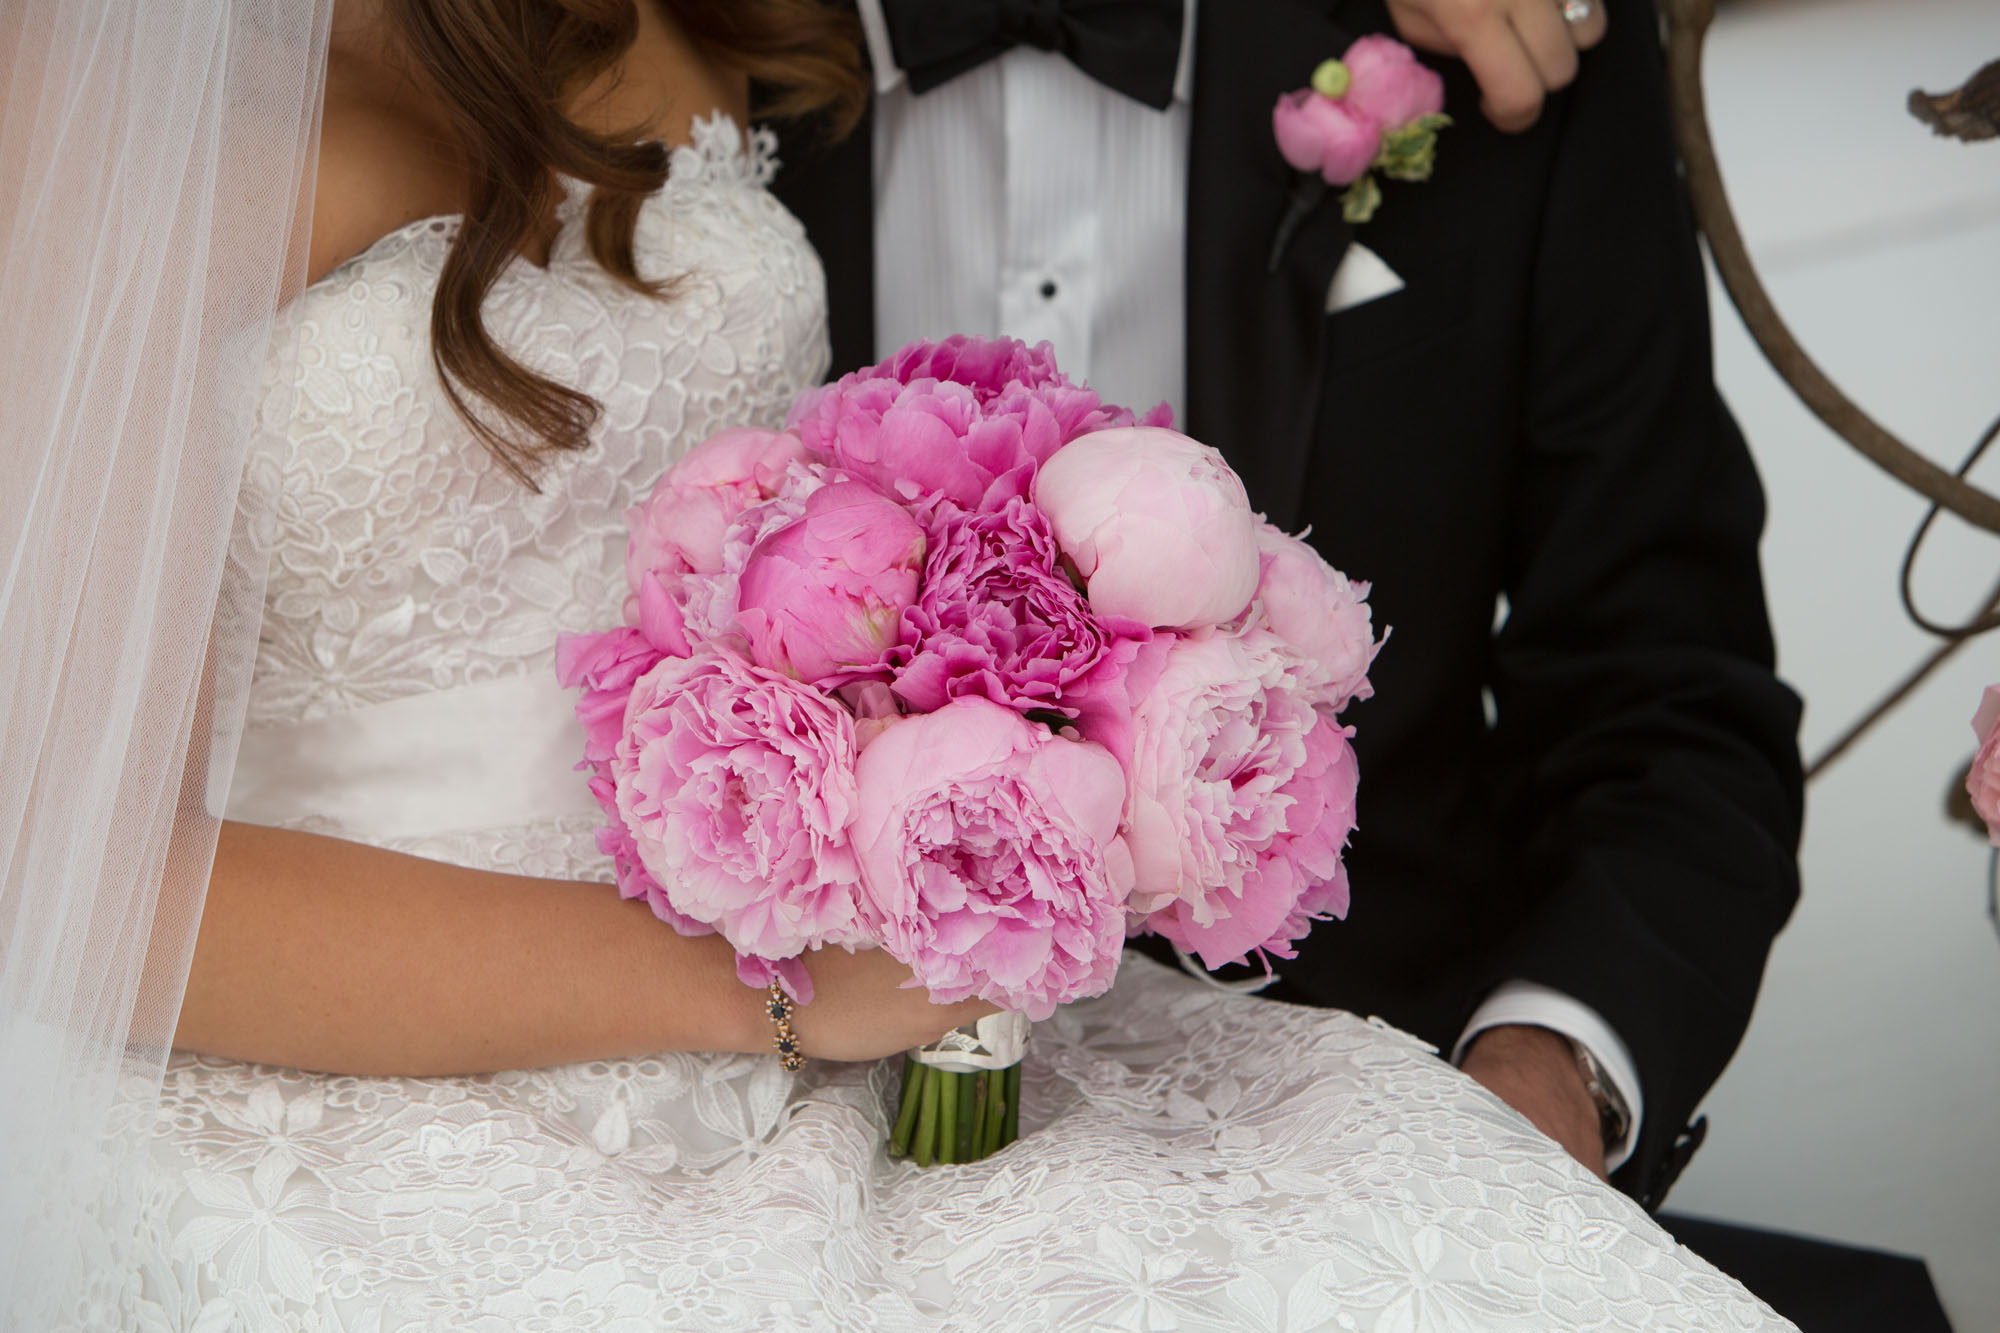 bridal bouquet of peonies in shades of pink